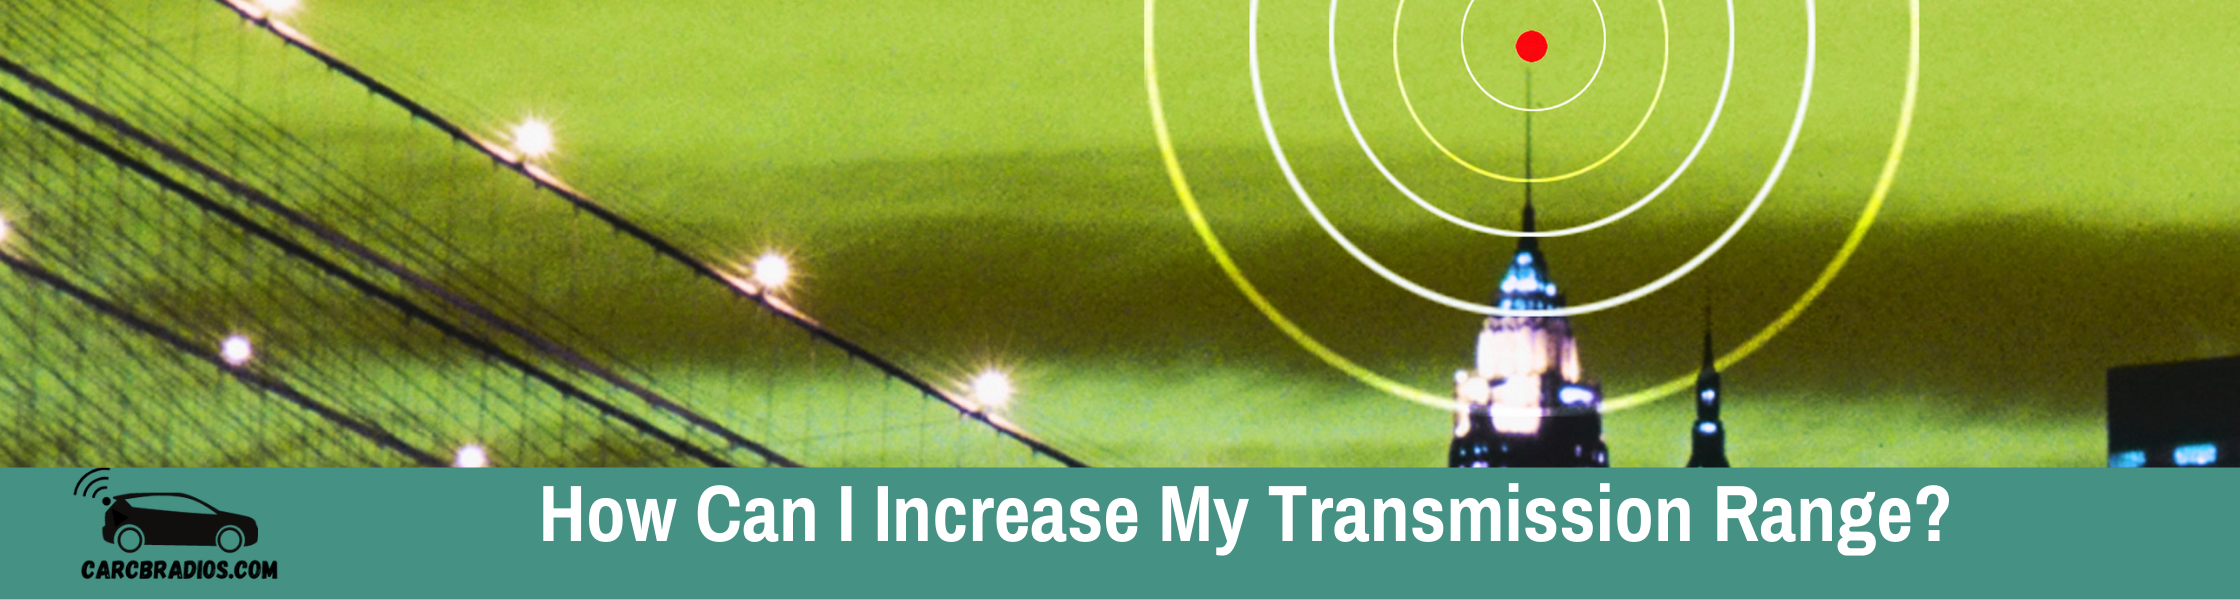 How Can I Increase My Transmission Range?: The distance you can communicate with your walkie-talkie is a function of signal strength, antenna gain, weather and atmospheric conditions, terrain, building materials, and other obstructions between the transmitter and receiver.